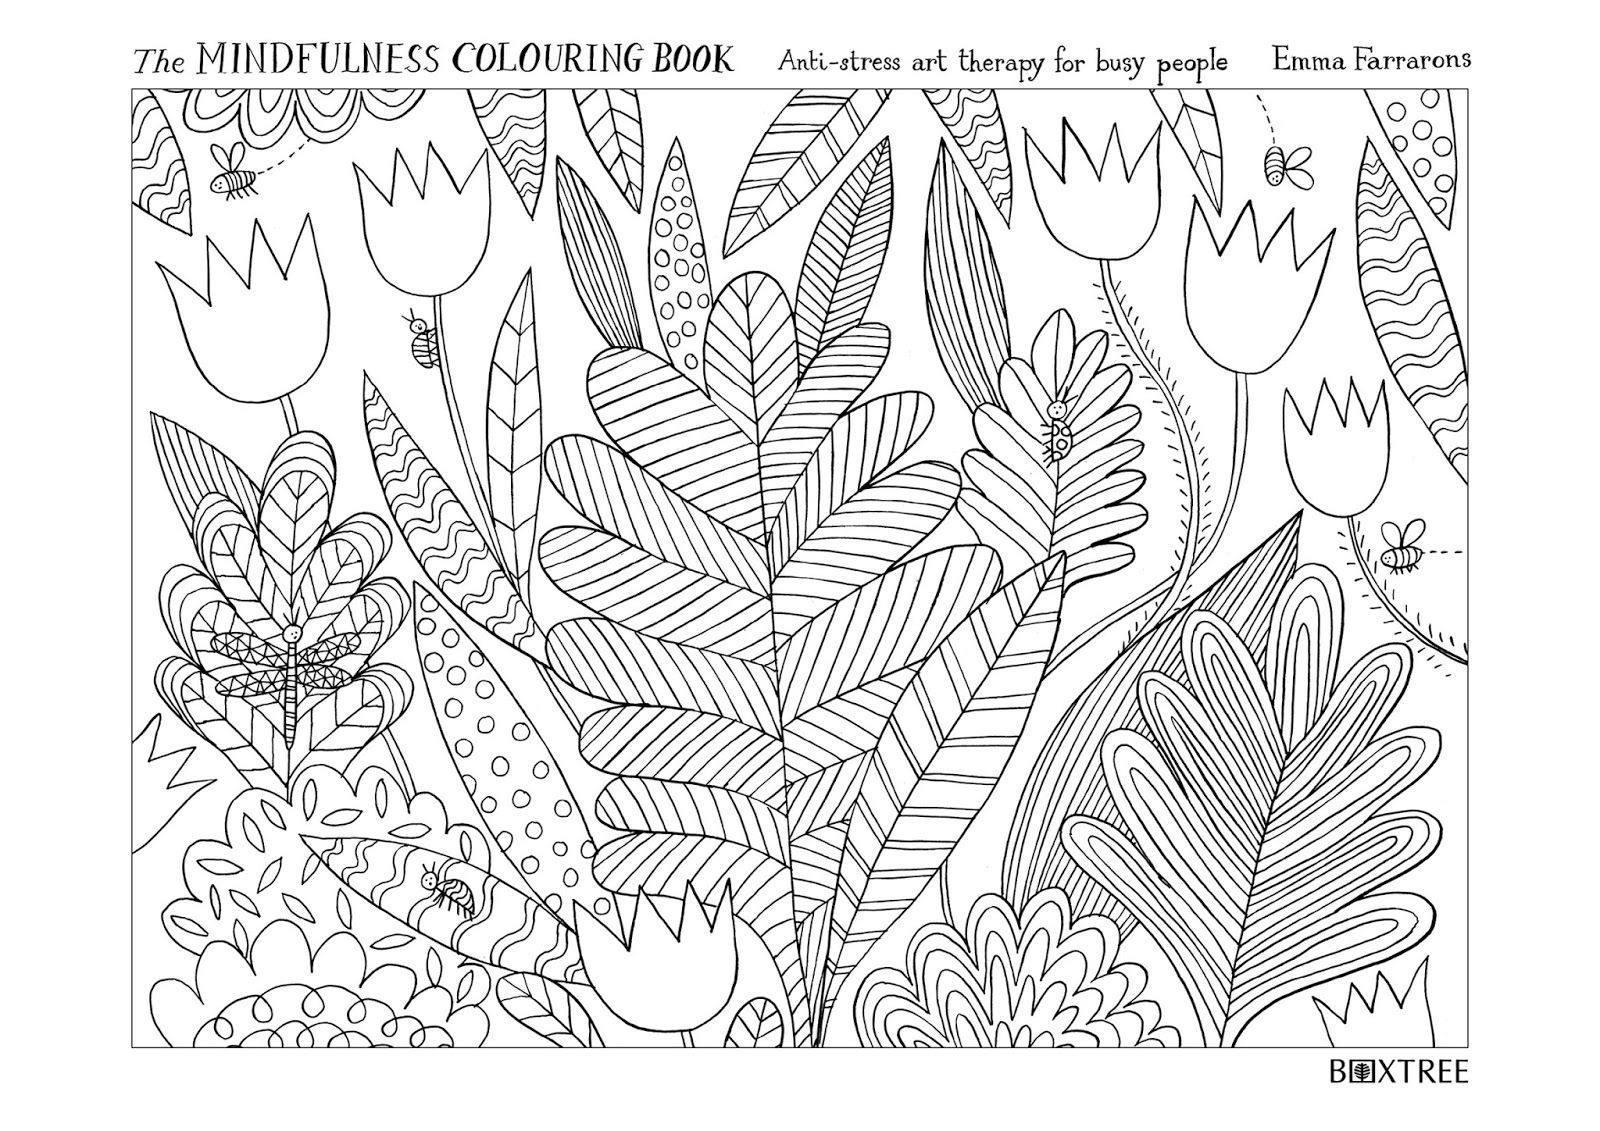 Mindfulness Colouring Book Sheet By Emma Farrarons Jpg 1600 1131 Coloring Books Mandala Coloring Pages Mindfulness Colouring